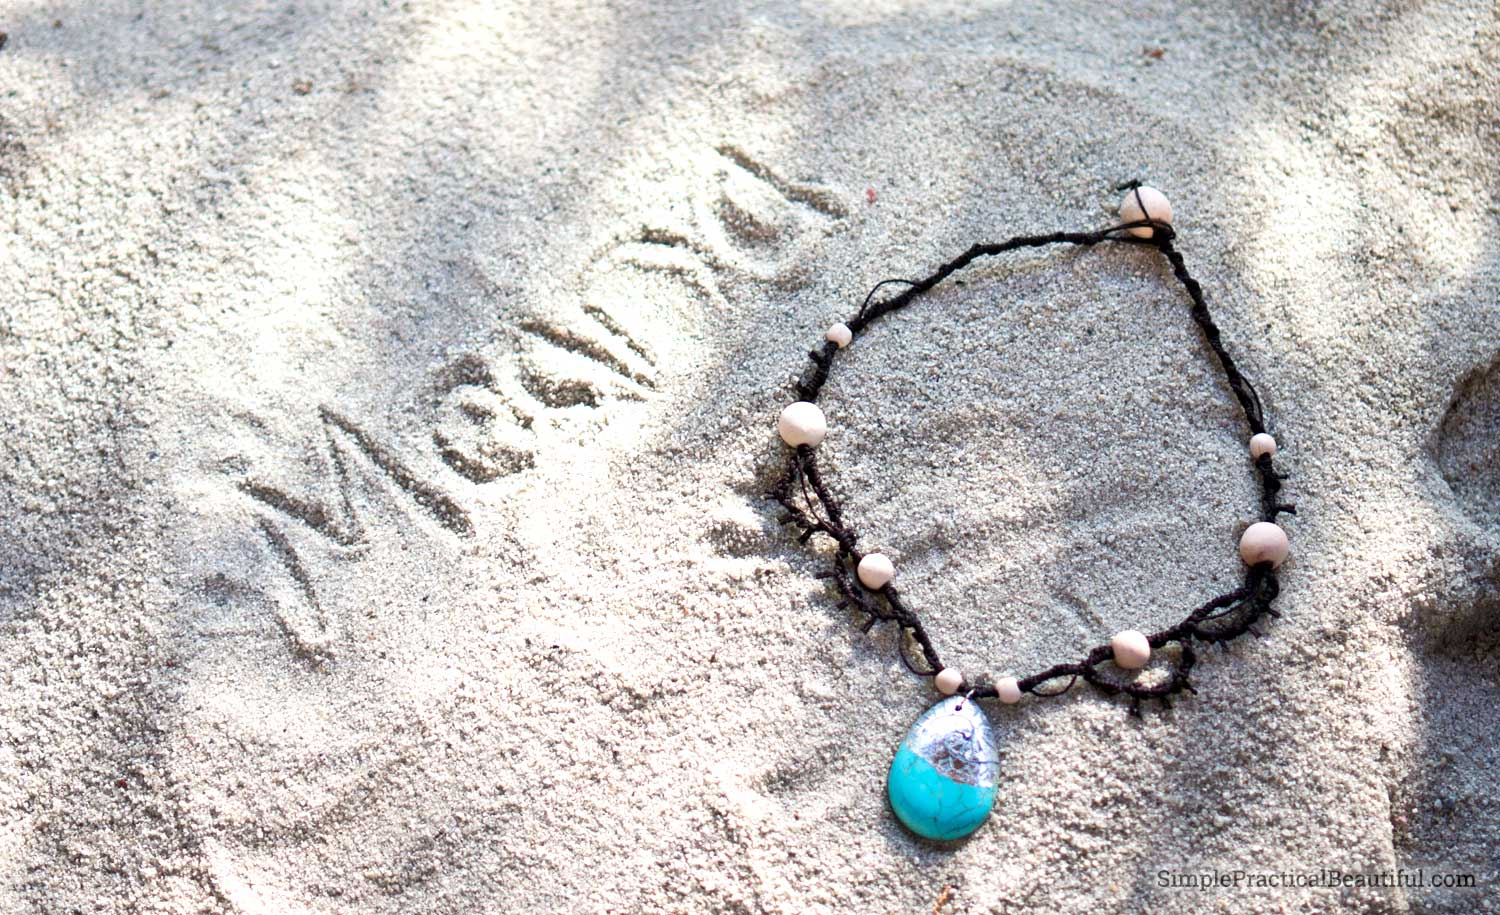 How to make Moana's necklace with hemp, and how to make a charm that looks like Moana's locket. DIY jewelry and a gift idea.